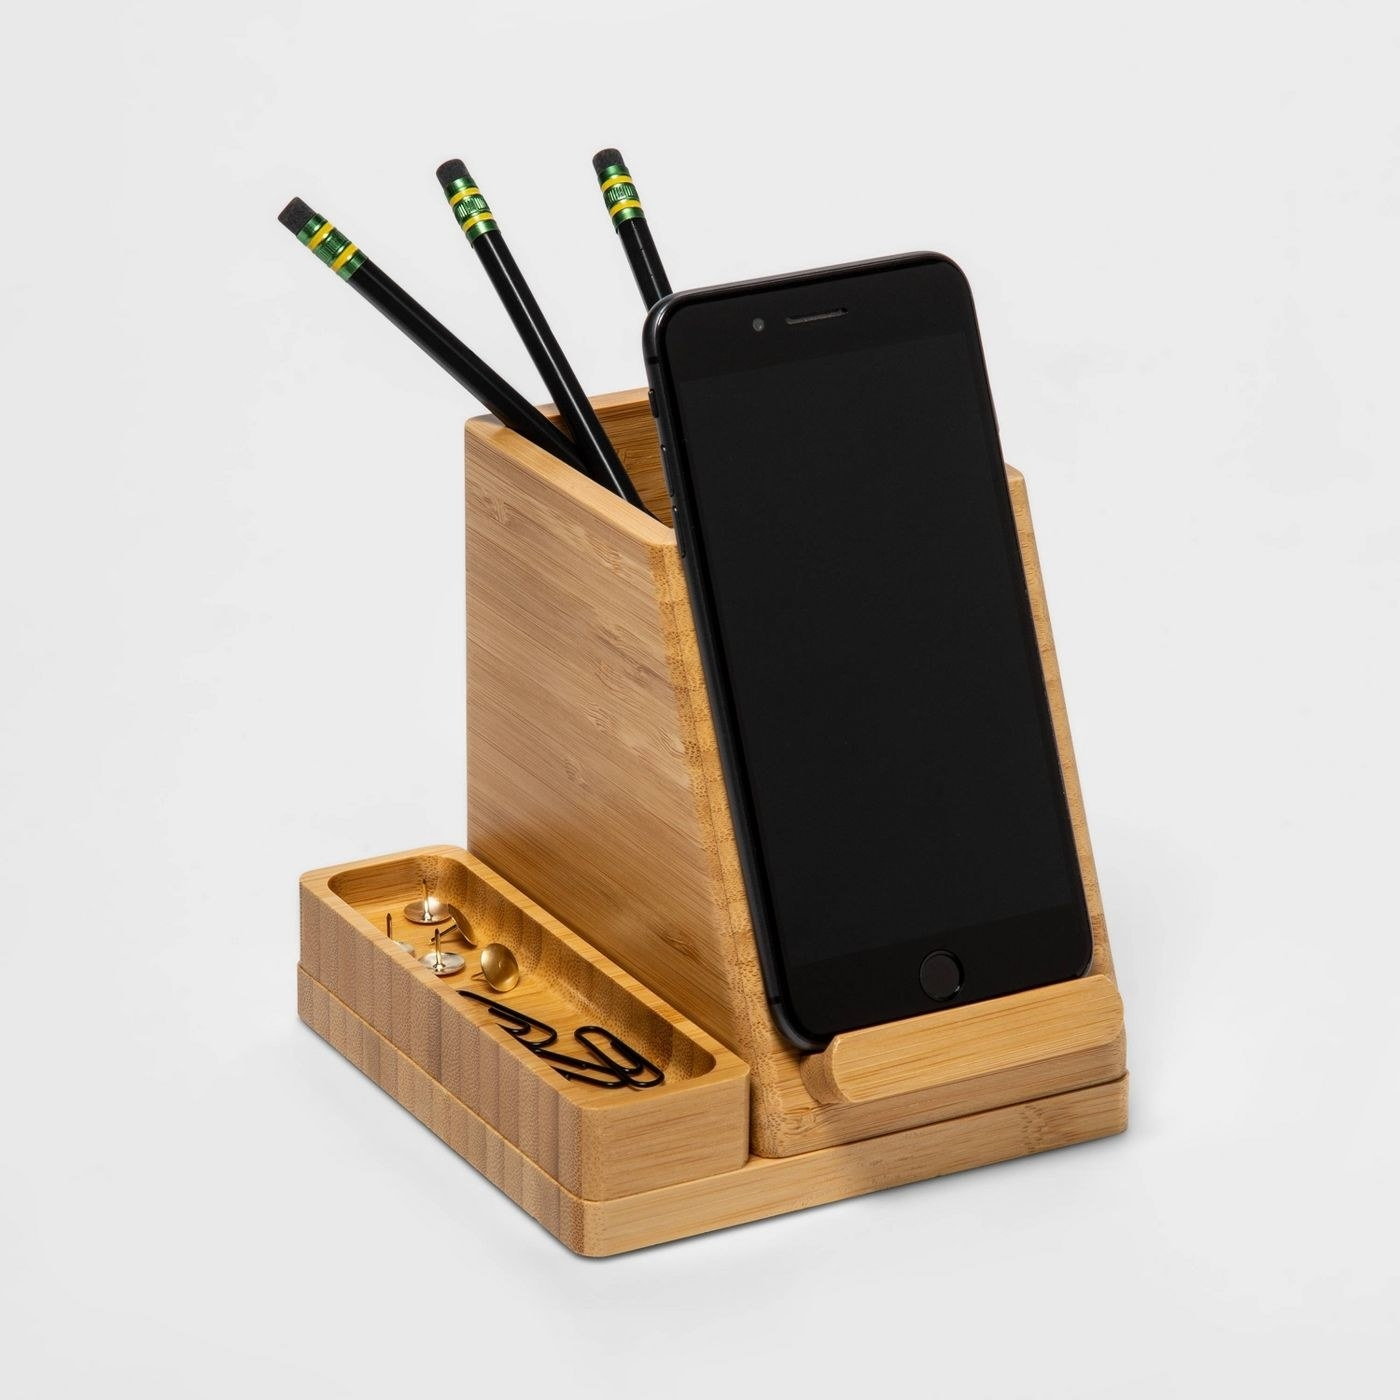 The desk organizer, which is comprised of a rectangular pencil up with an angled phone stand in front of it, and a small oblong container for paper clips or rubber bands on the left side